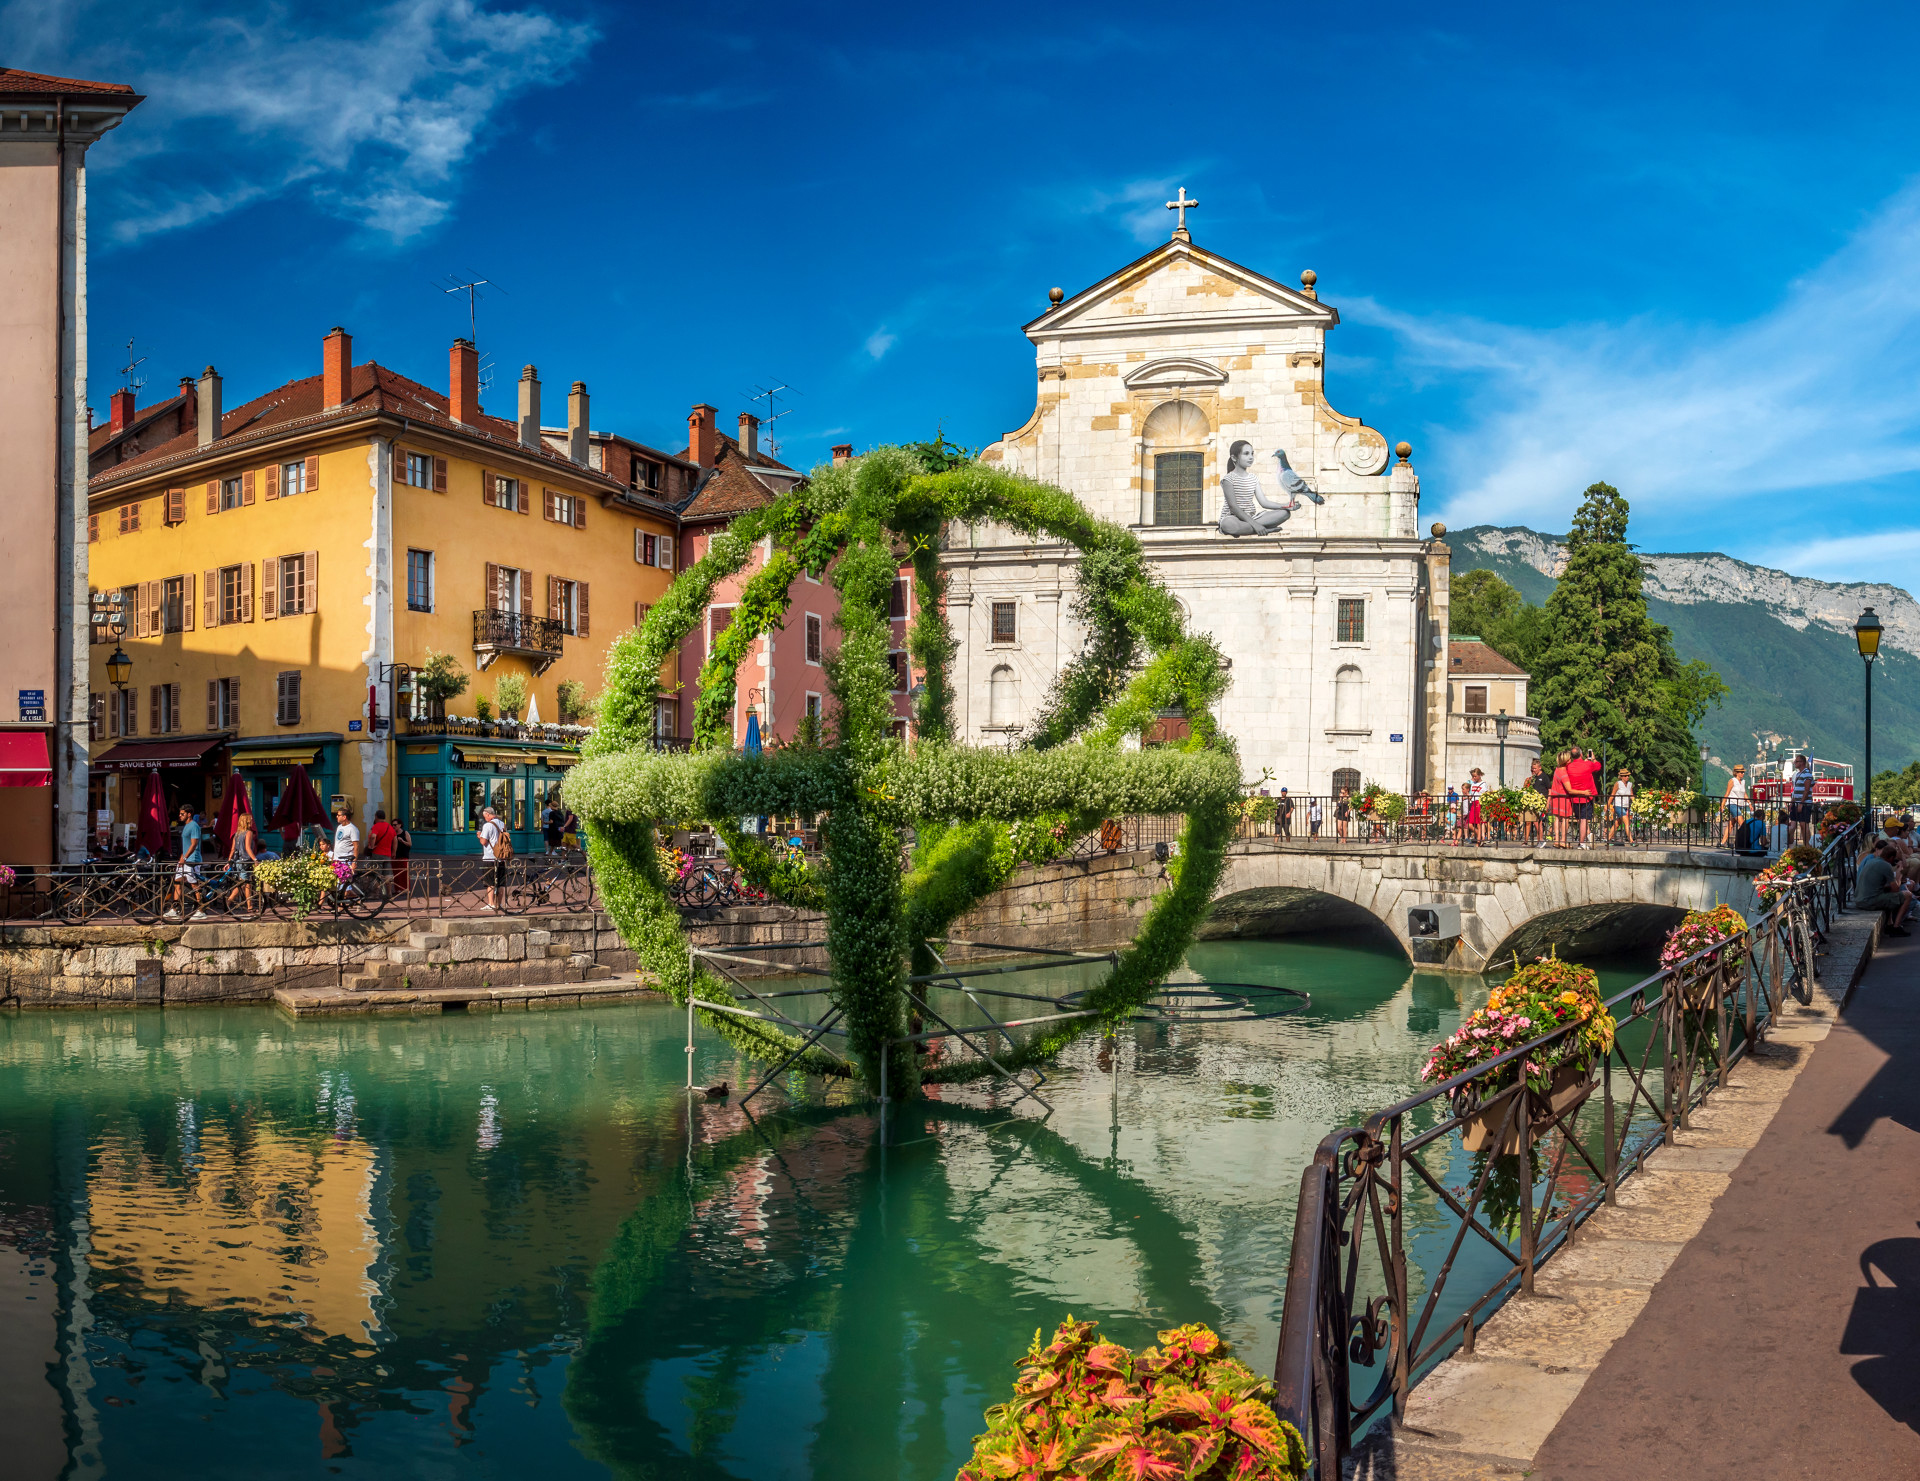 kt_2020_370_Keytours_excursions_Swisstours_annecy1_2048_10